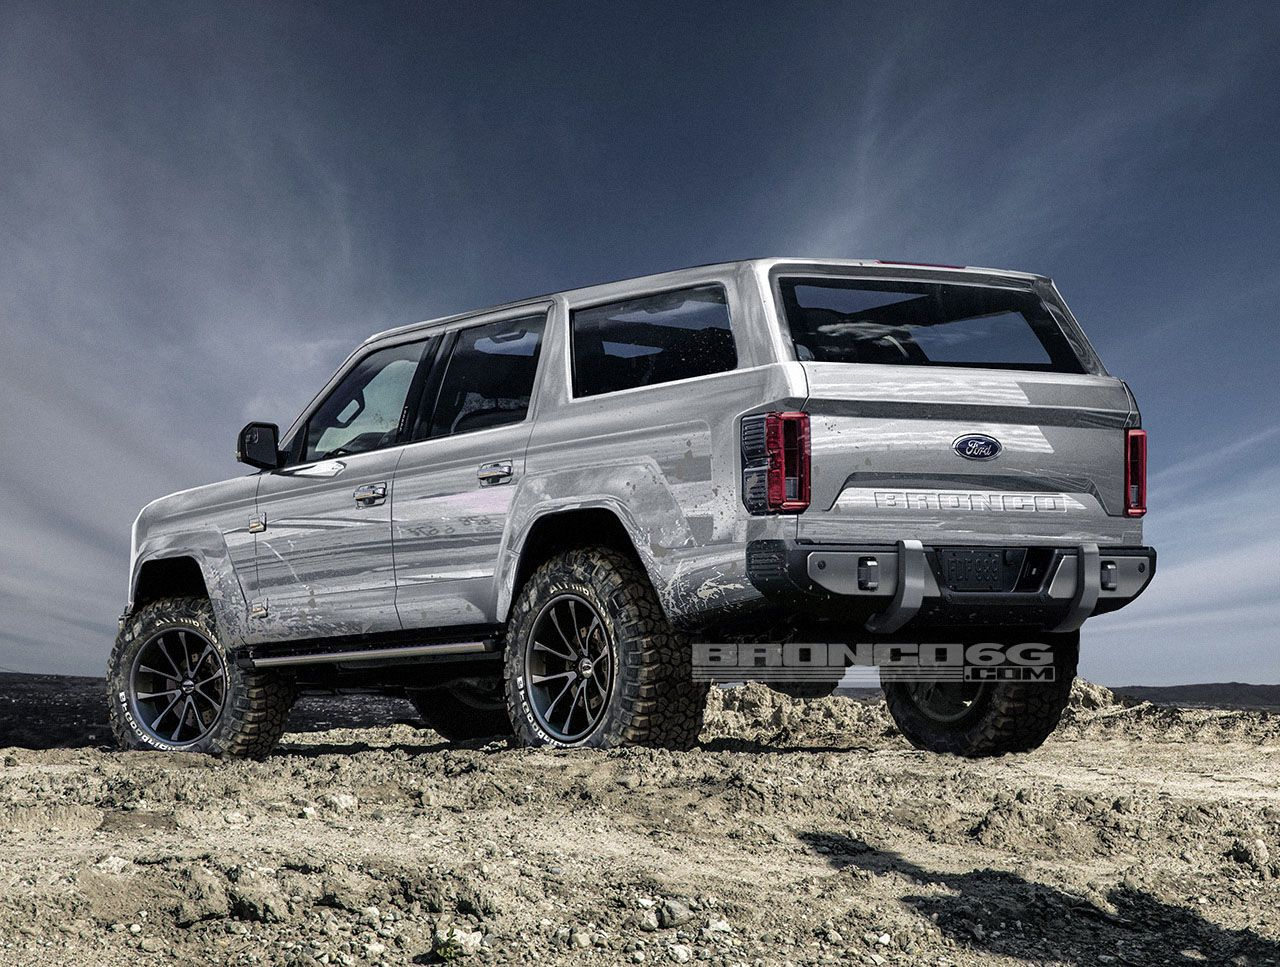 Pin By Joe On Mudders Trucks Pinterest Ford Ford Bronco And Cars